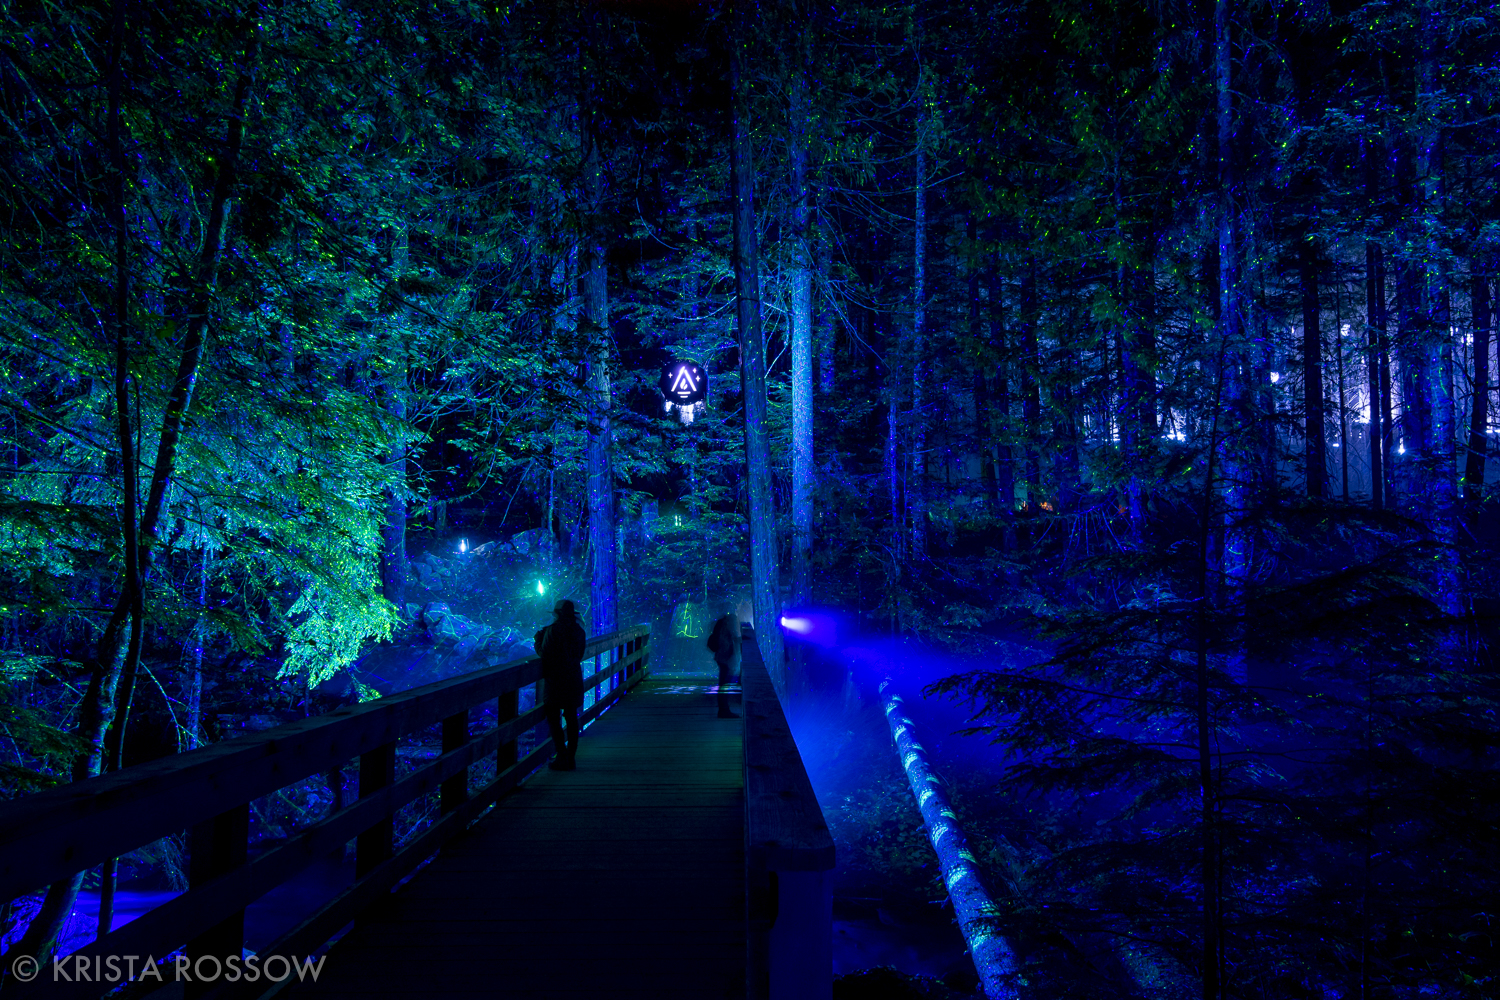 20-National-Geographic-Krista-Rossow-Whistler-vallea-lumina